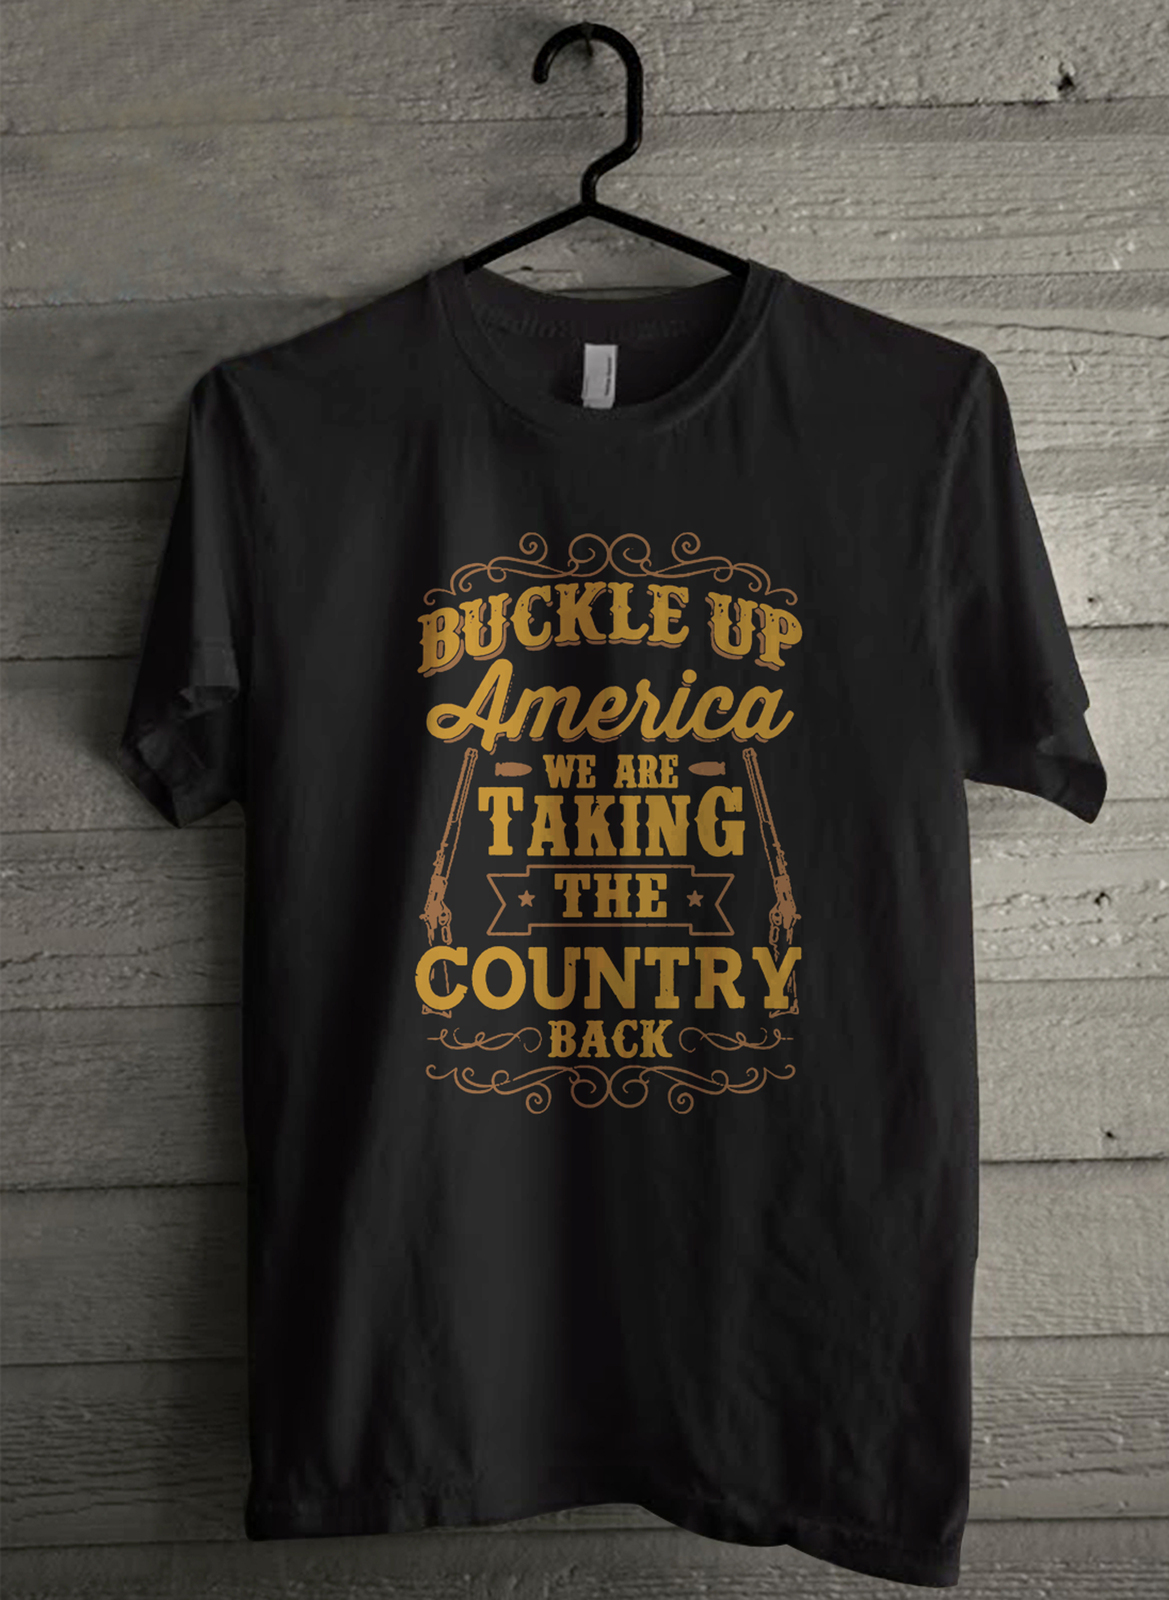 Primary image for Buckle up America we are taking the country Men's T-Shirt - Custom (3432)